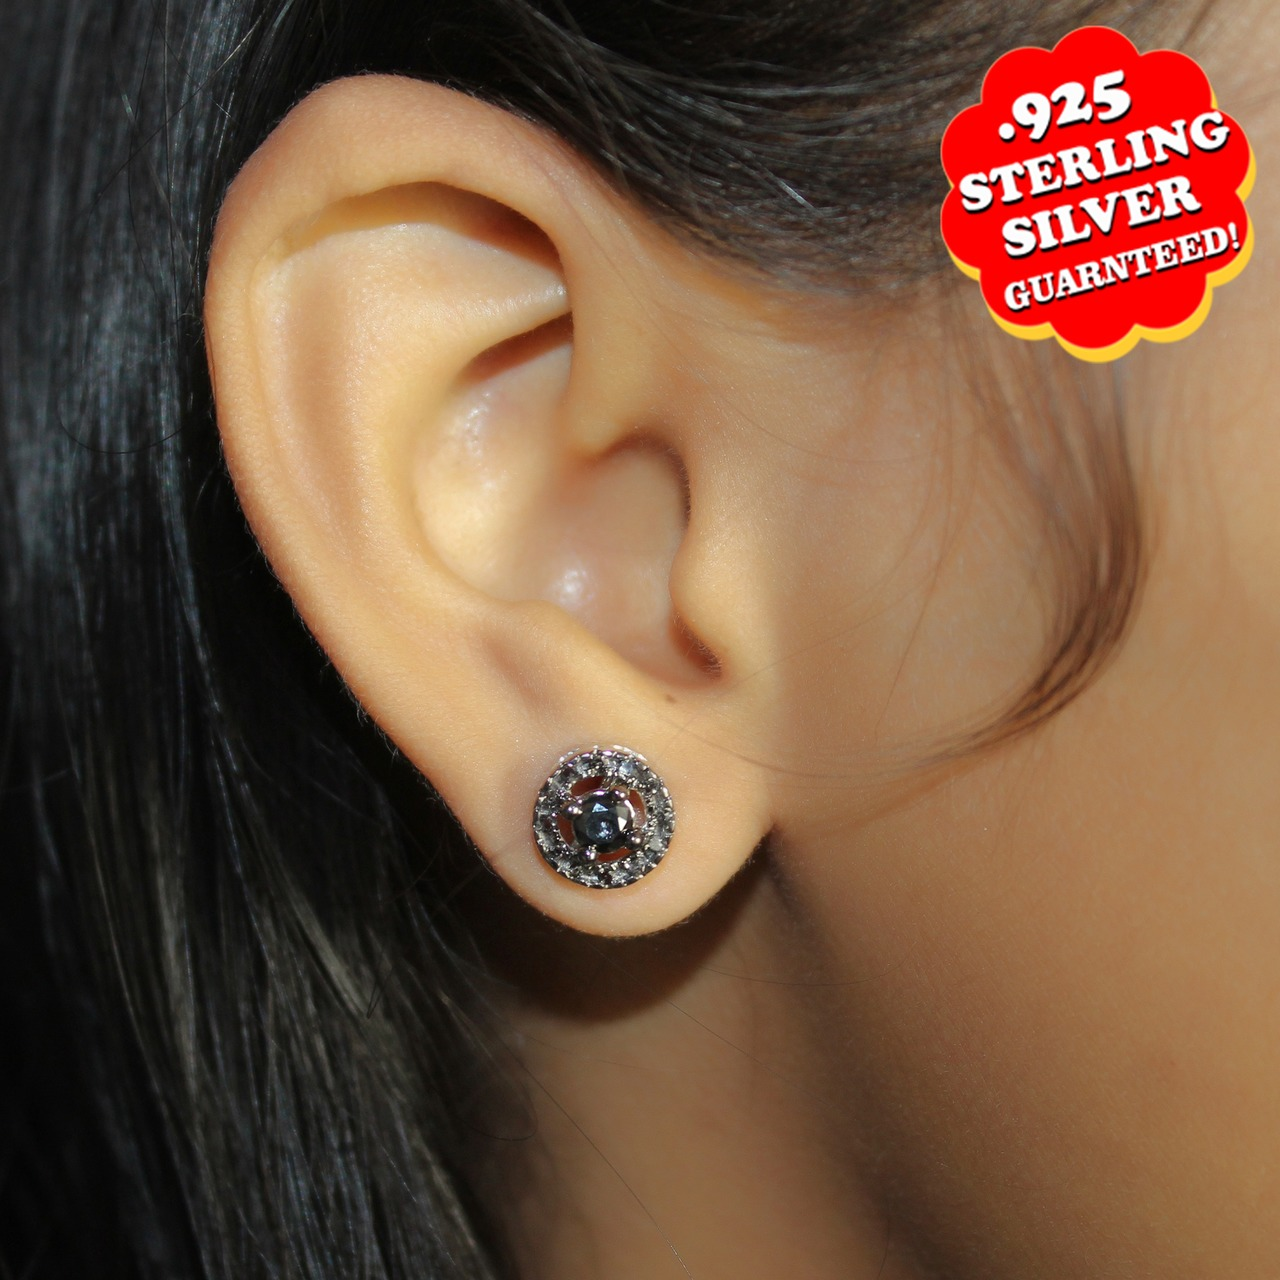 14K White Gold Over Silver 0.48Ct Round Black Real Diamond Halo Stud Earrings